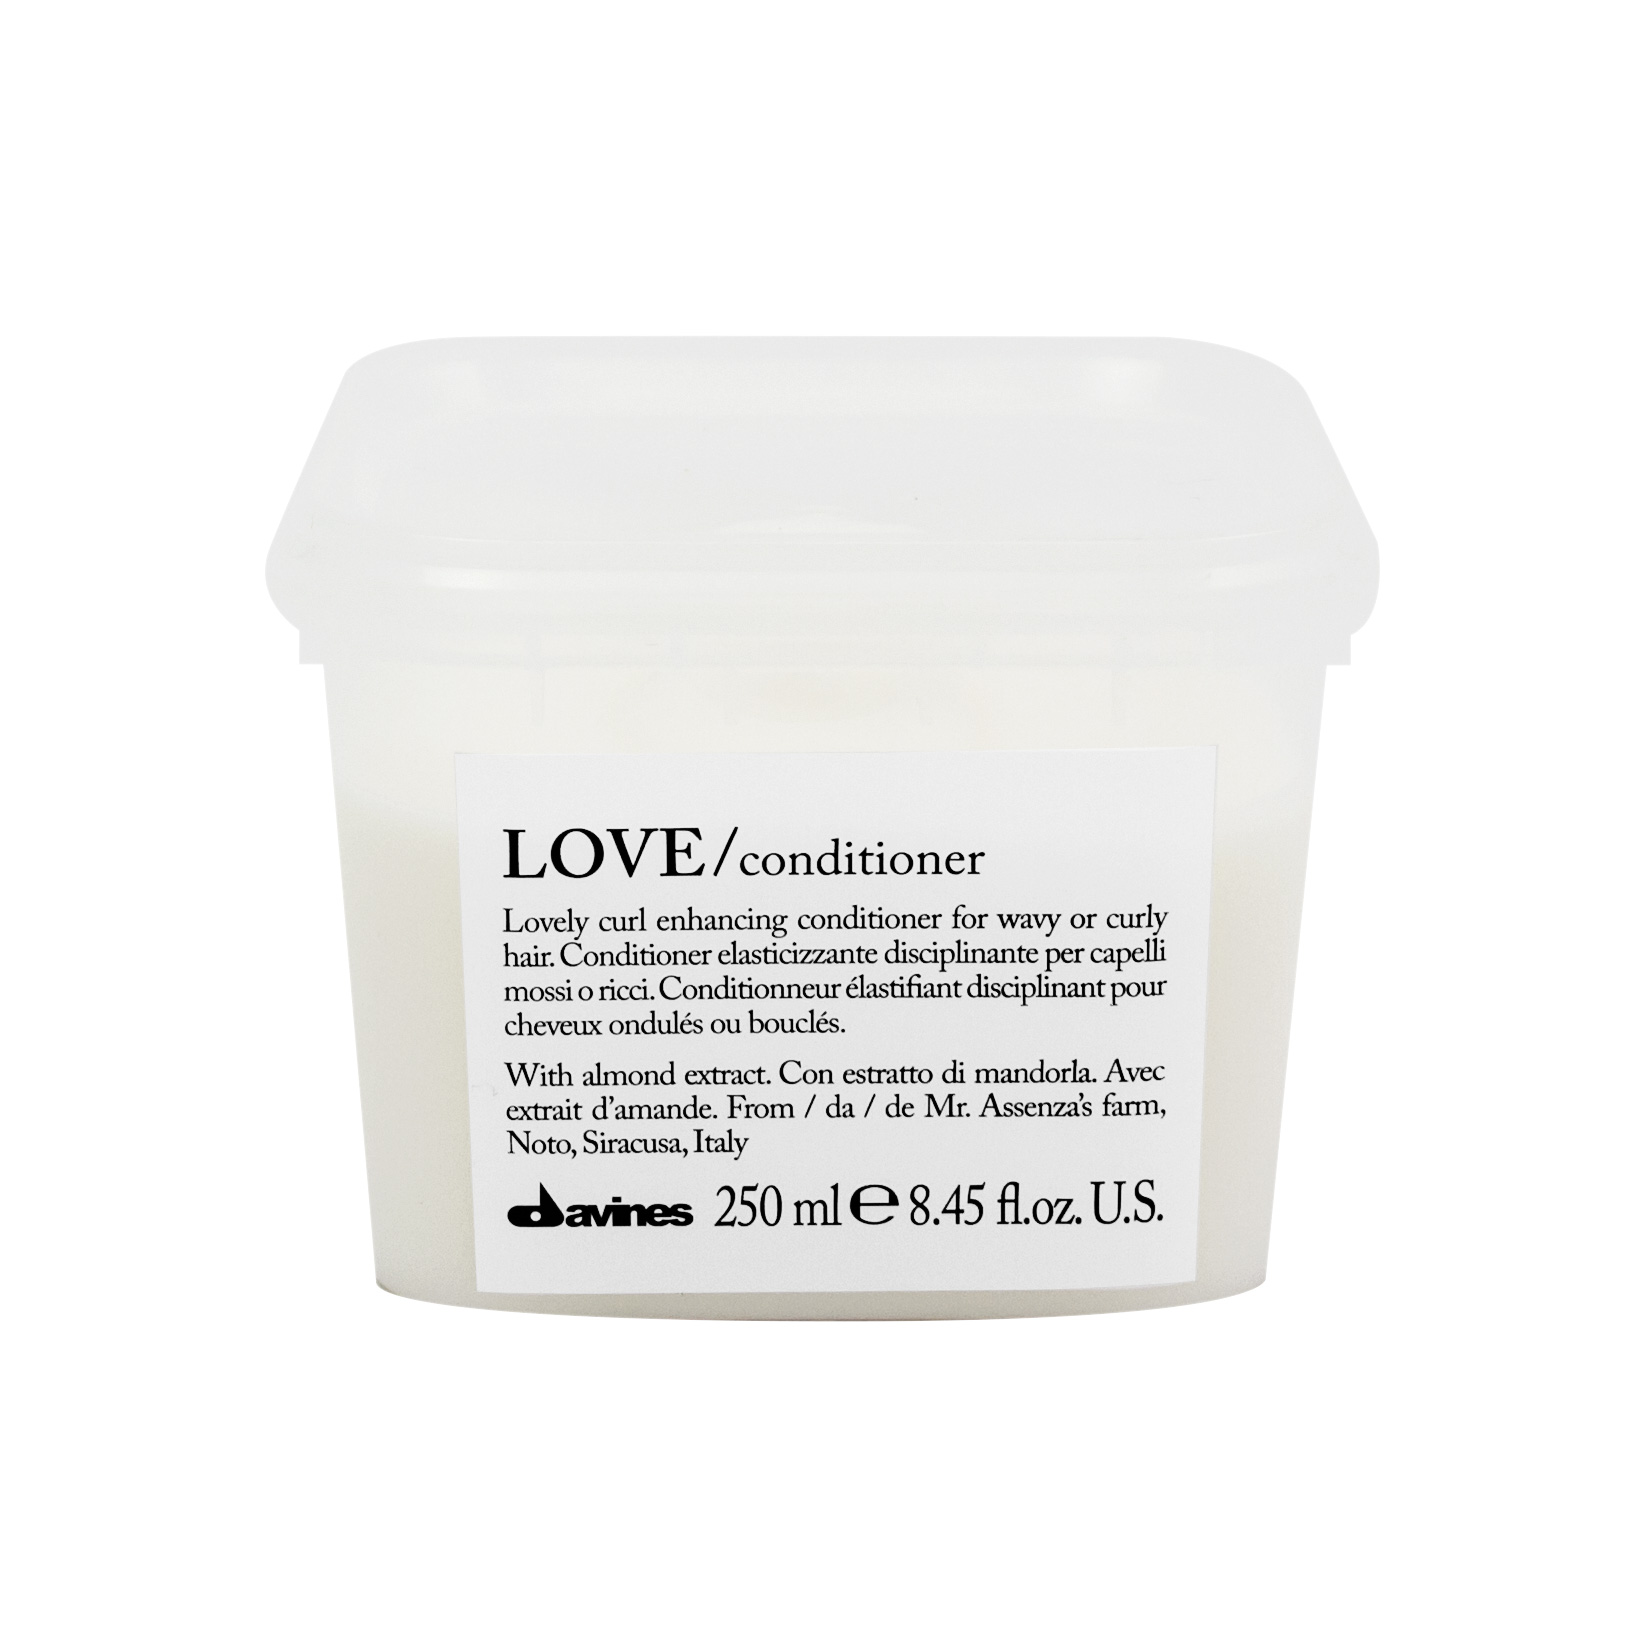 LOVE Curl Enhancing Conditioner